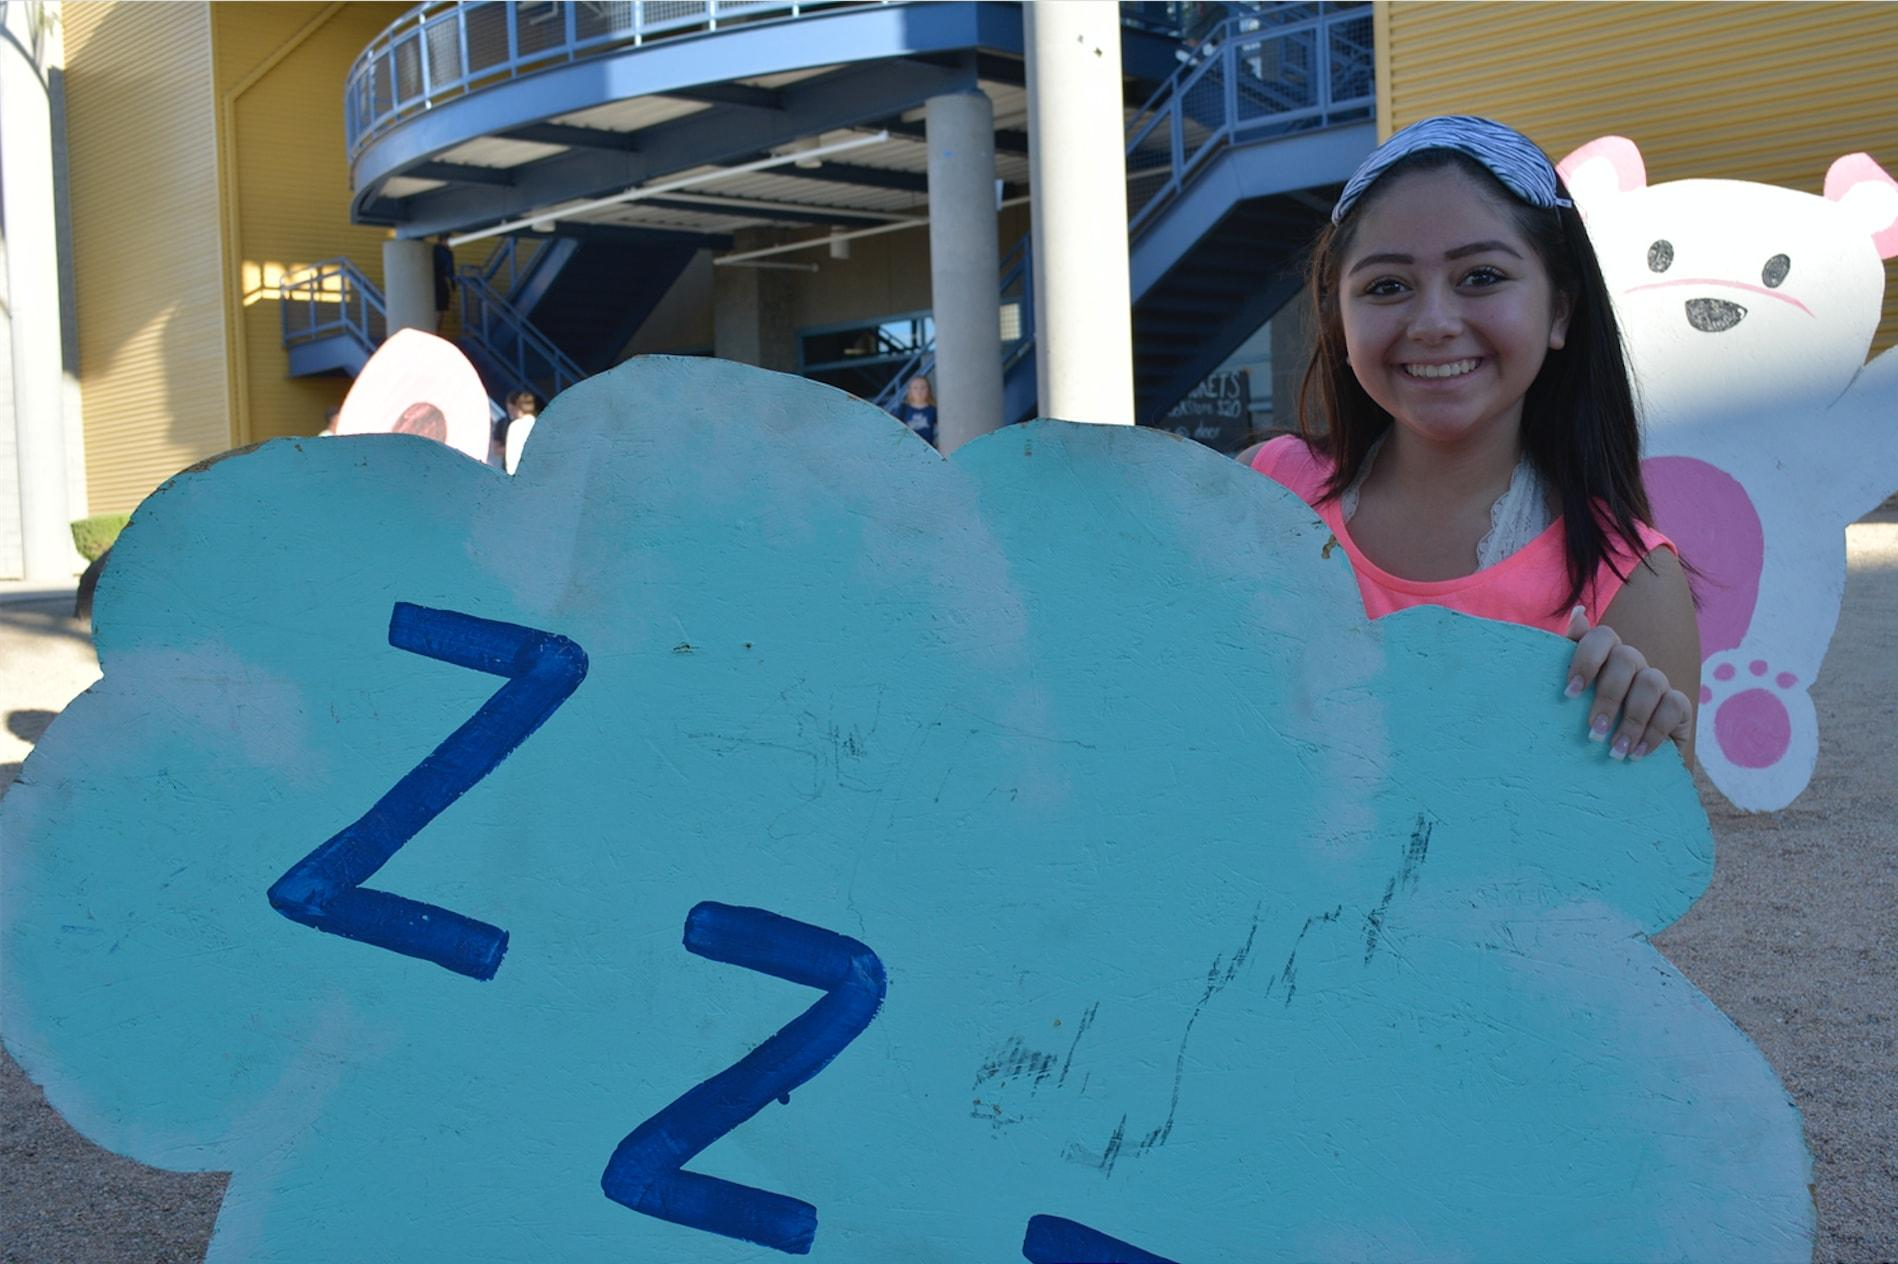 Mila Alarcon, sophomore, poses with a spirit week bulletin in her sleep attire to complement the spirit week theme.